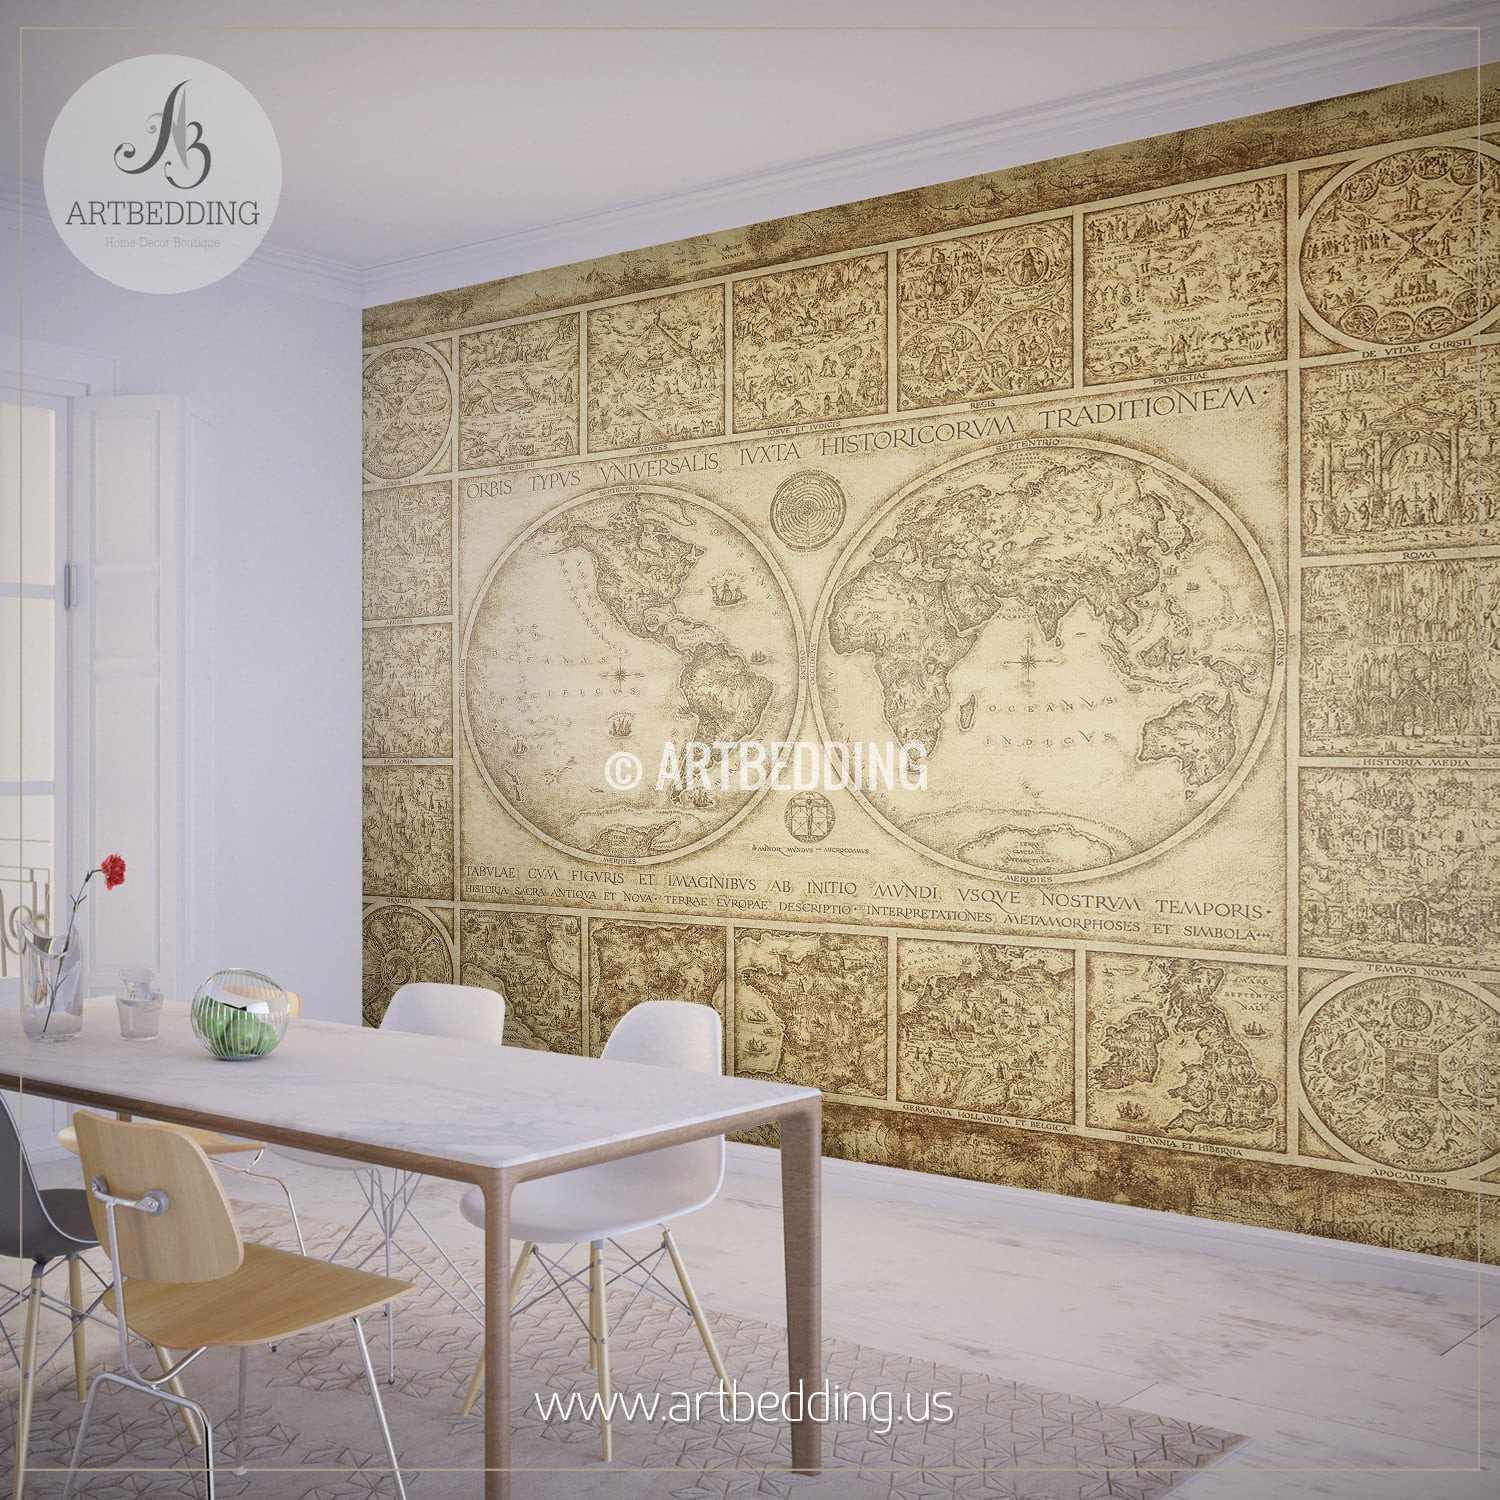 Vintage map wall mural self adhesive photo mural artbedding for Antique map mural